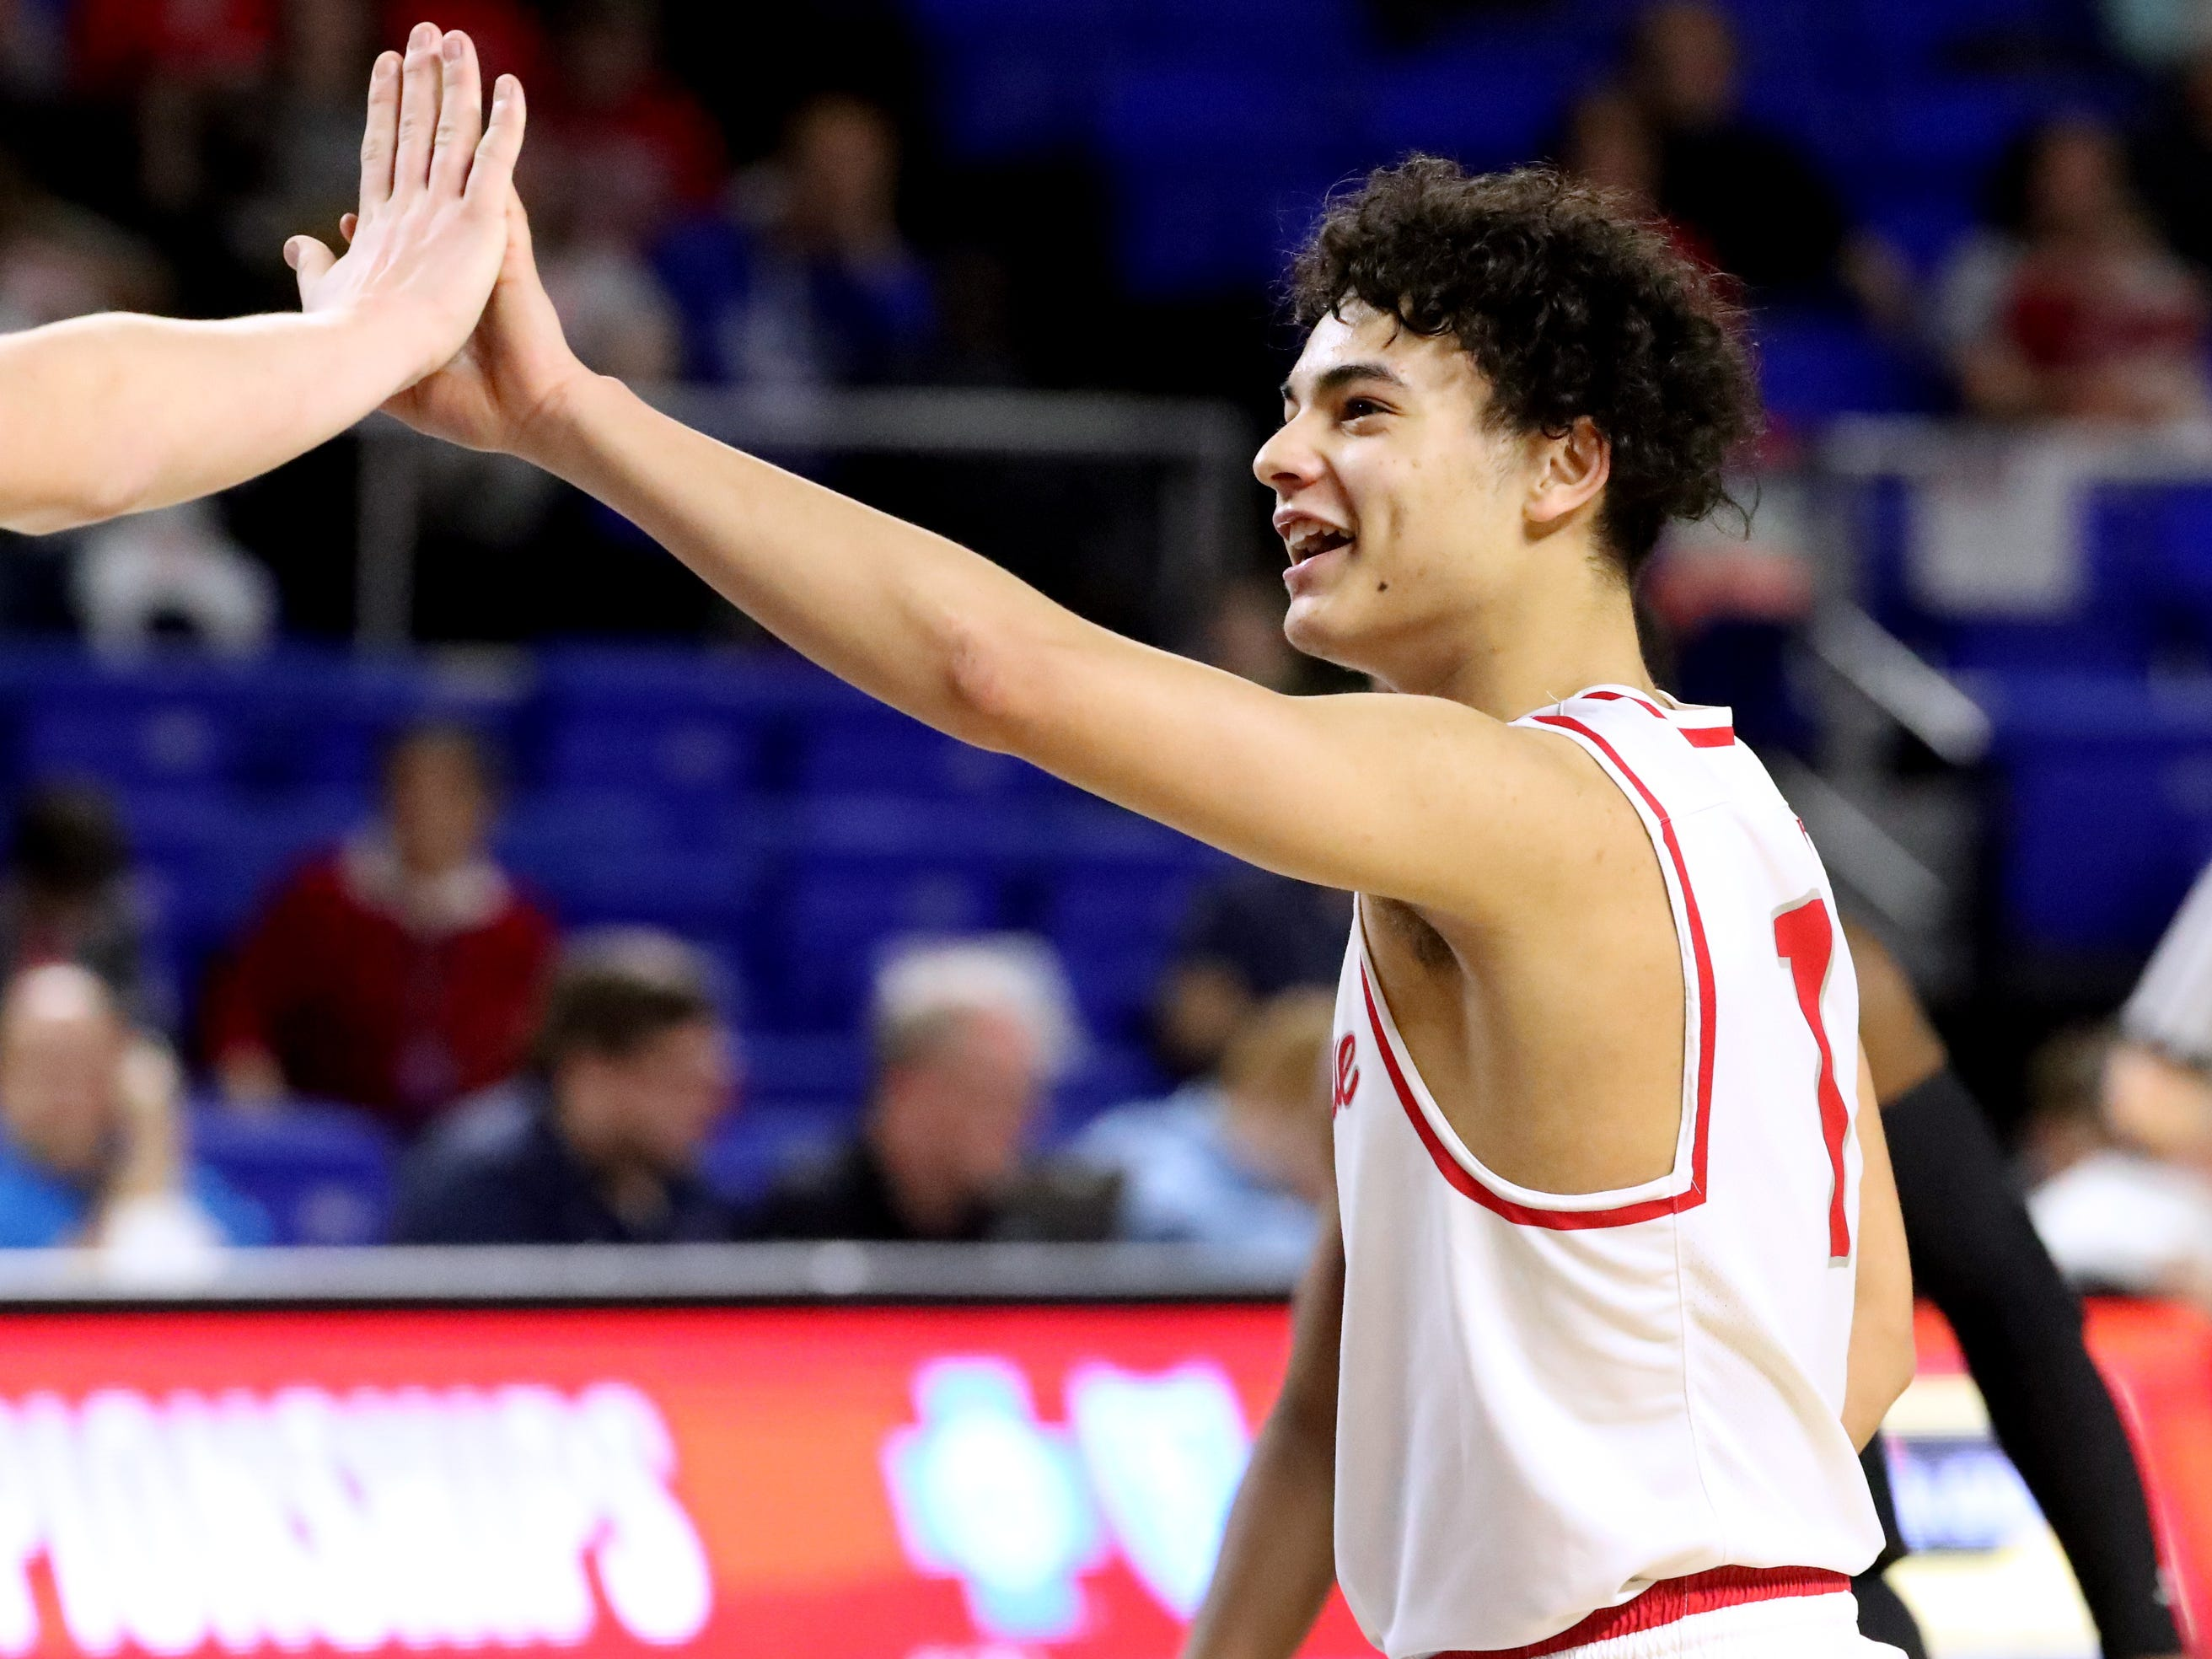 McKenzie's Lucas King (1) gives a high-five to senior McKenzie's Ben Austin (32) near the end of the semifinal round of the TSSAA Class A Boys State Tournament against Humboldt, on Thursday, March 15, 2019, at Murphy Center in Murfreesboro, Tenn.